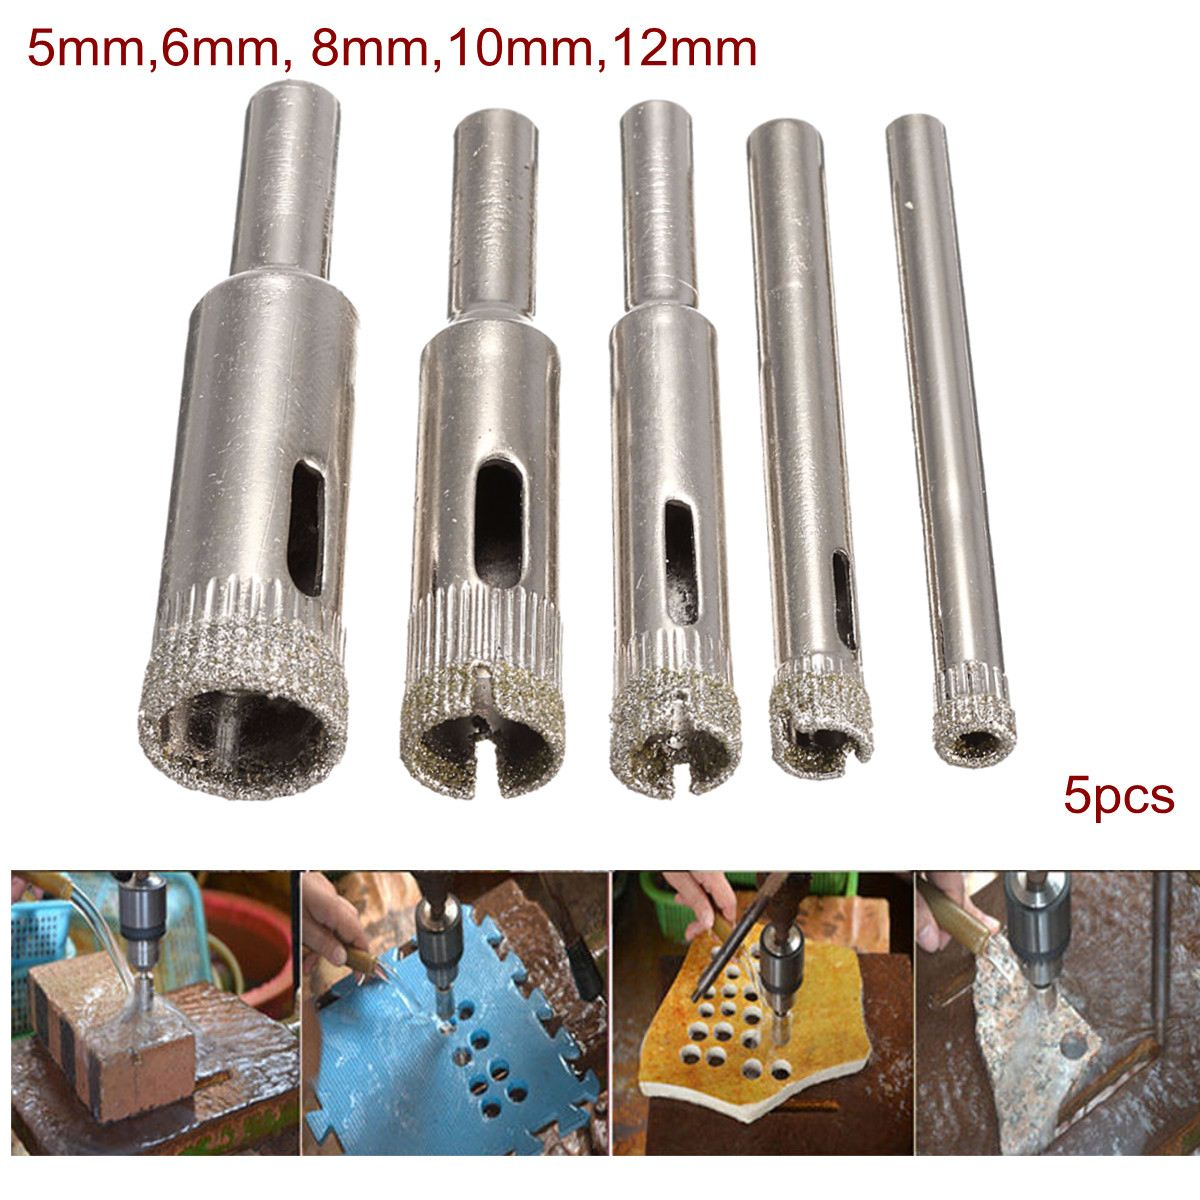 5Pcs 5mm-12mm Electroplate Diamond Coated Cutter Hole Saw Tool Set For Glass Marble Tile Granite Drill Bits Tools